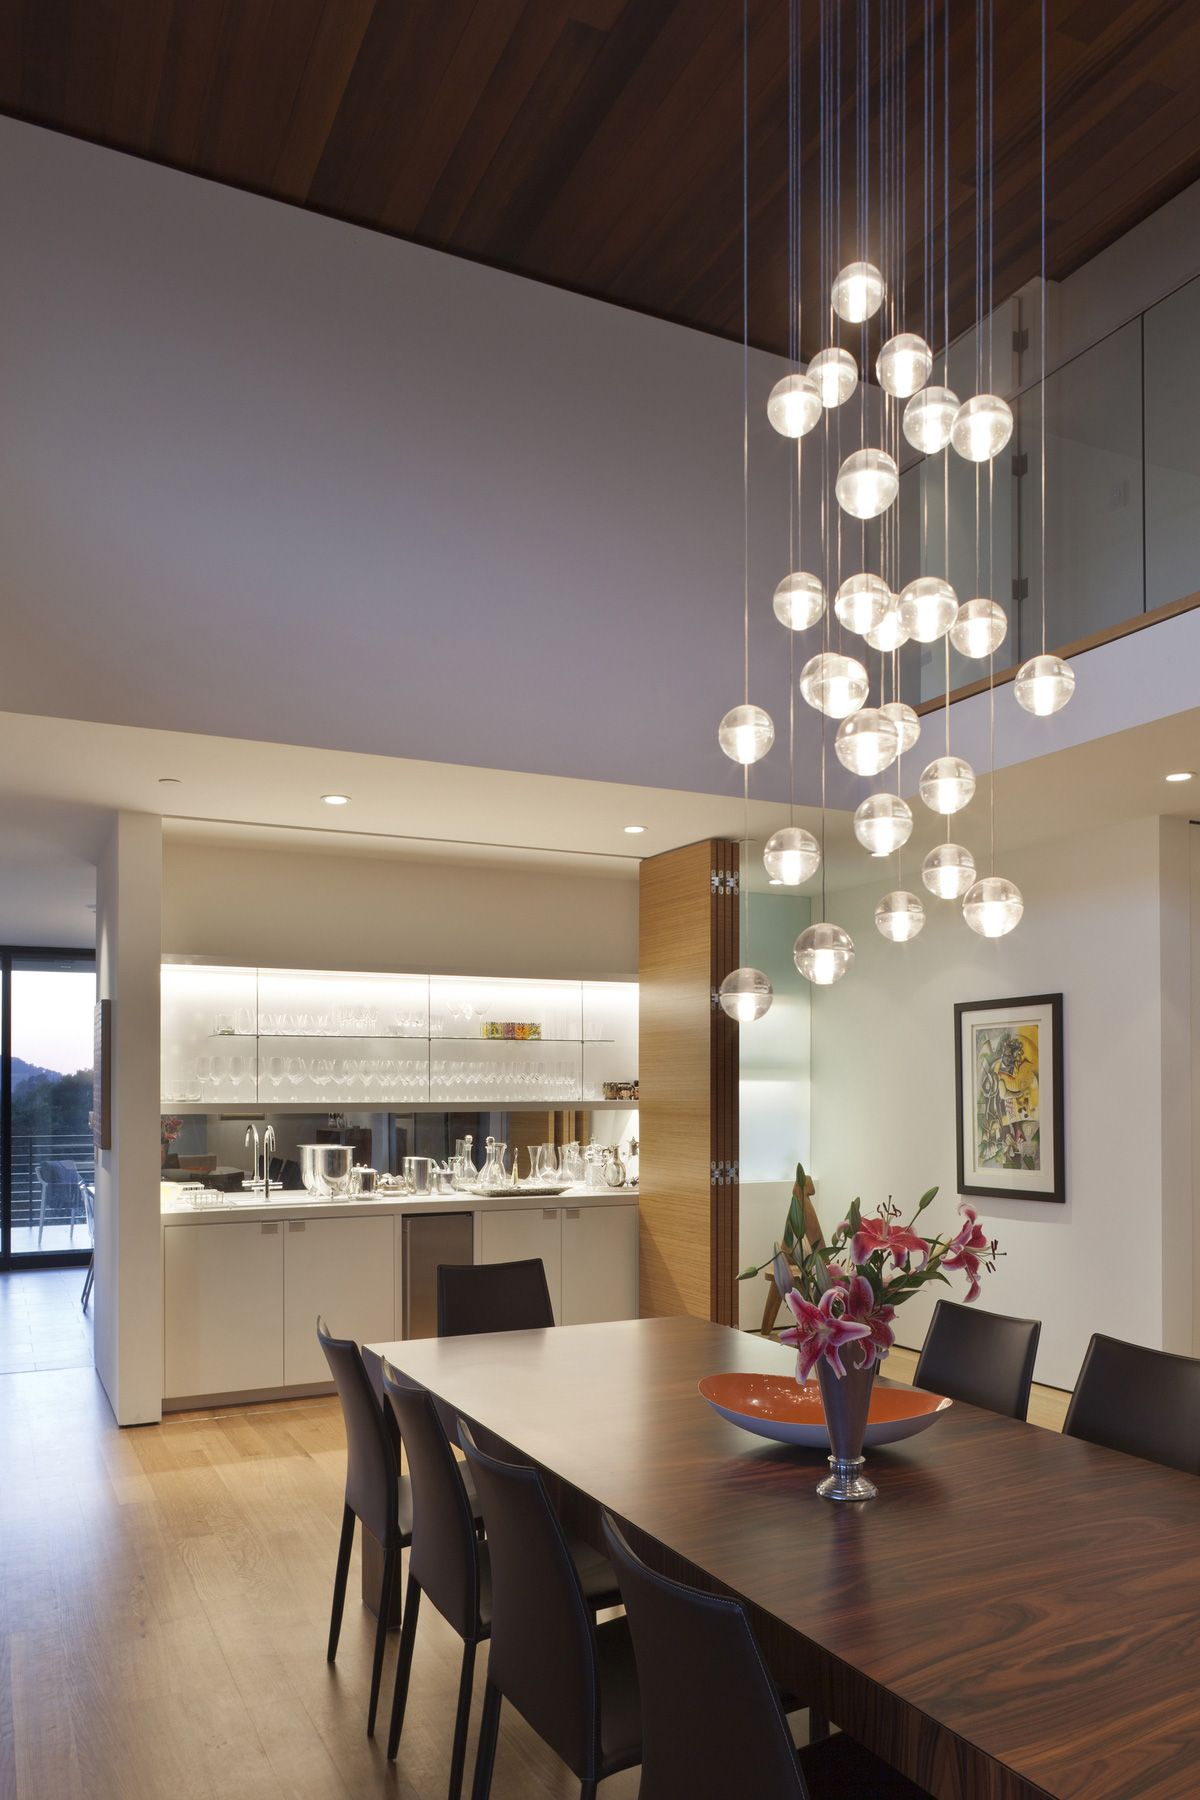 Contemporary Pendant Lighting For Dining Room Impressive Transforming One Storey Ranch Into Two Storey Open Floor Plan Design Inspiration